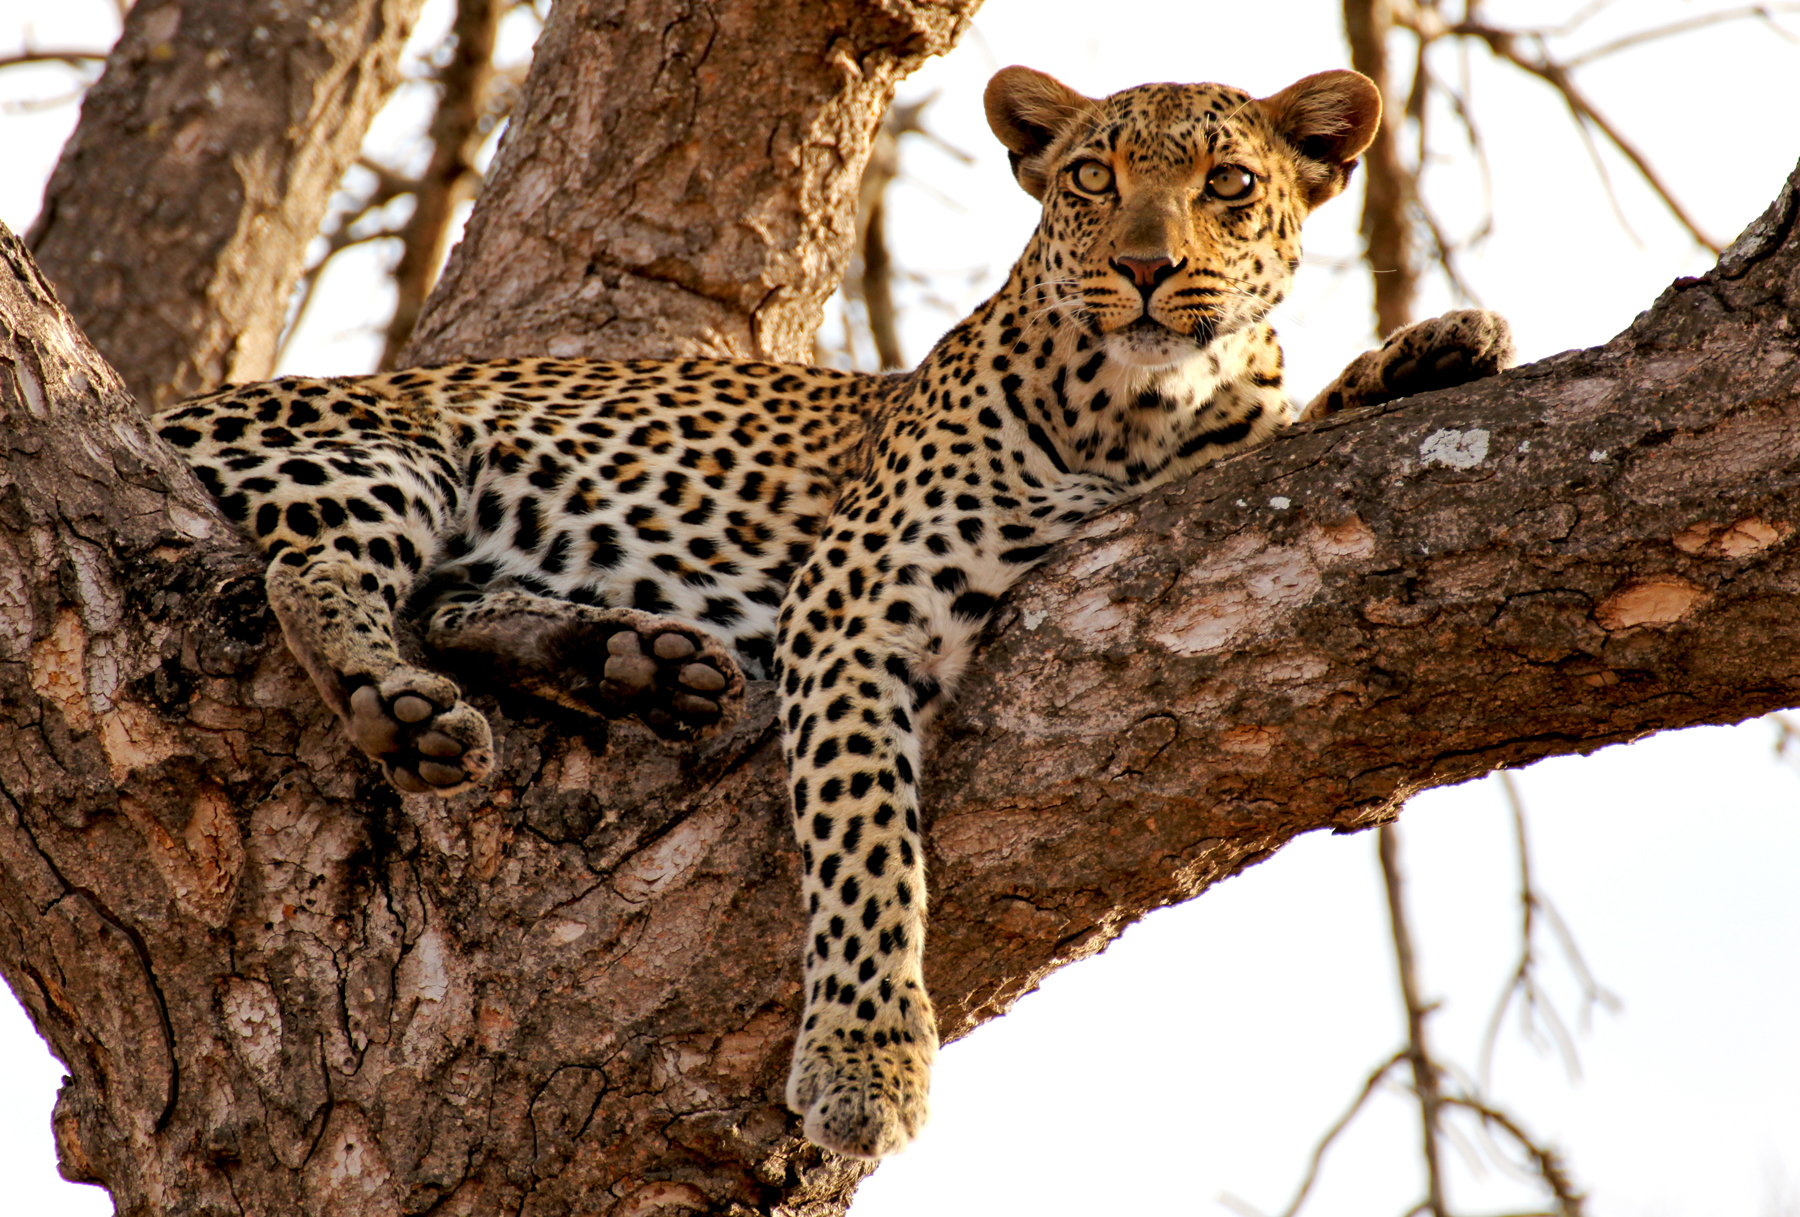 c1e5890e9c Best places to go on safari to view leopards in the wild in Africa